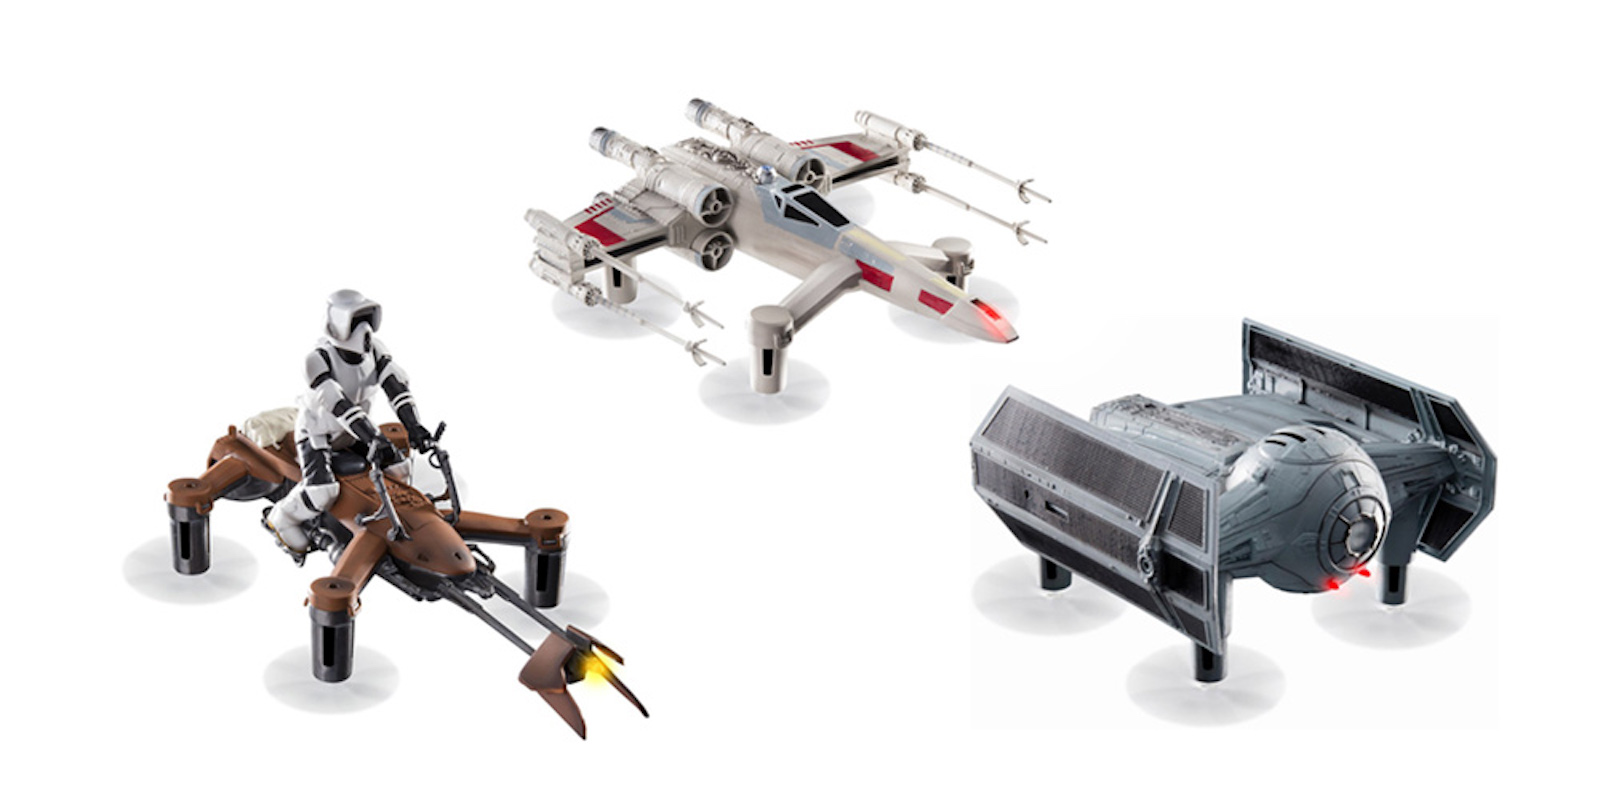 Re-enact dogfights with these Star Wars drones.